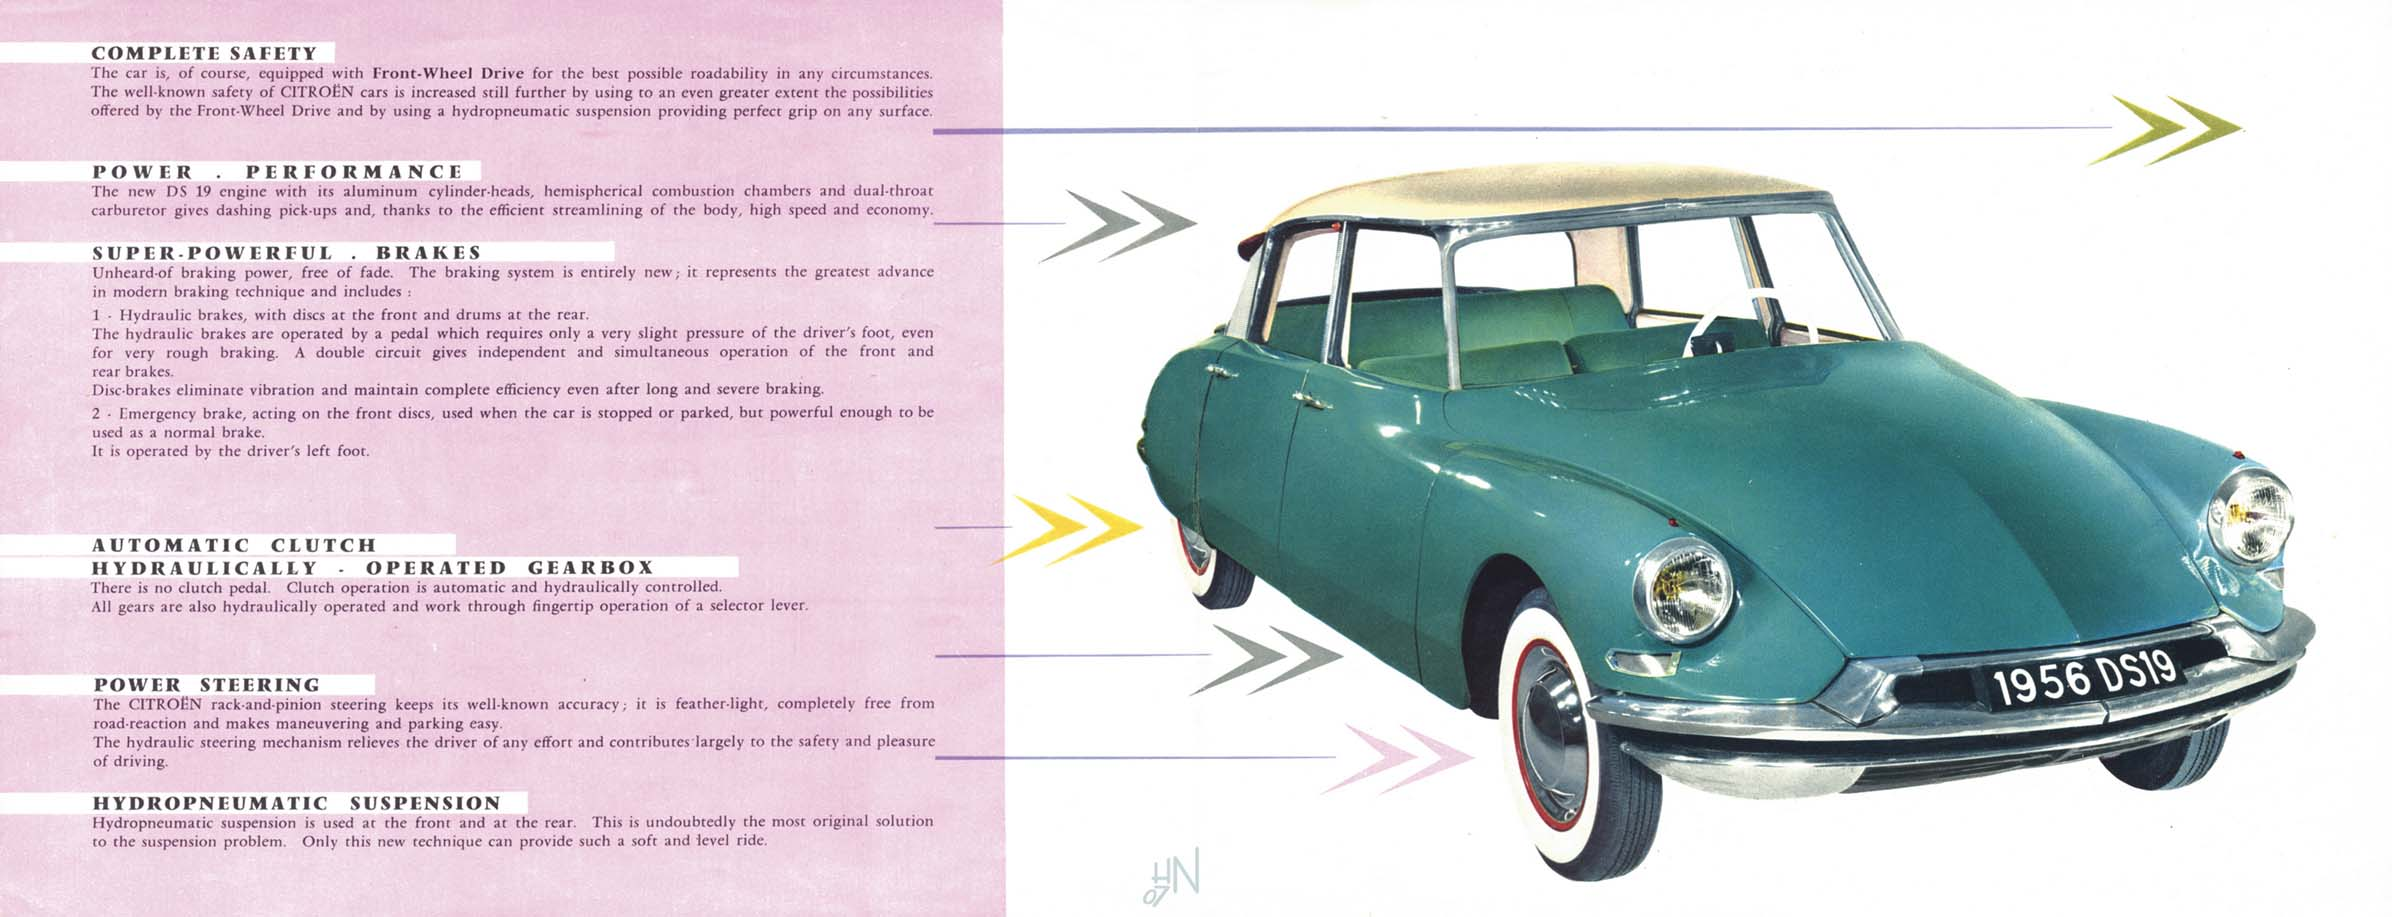 1956 citroen ds 19 brochure vanachro Image collections